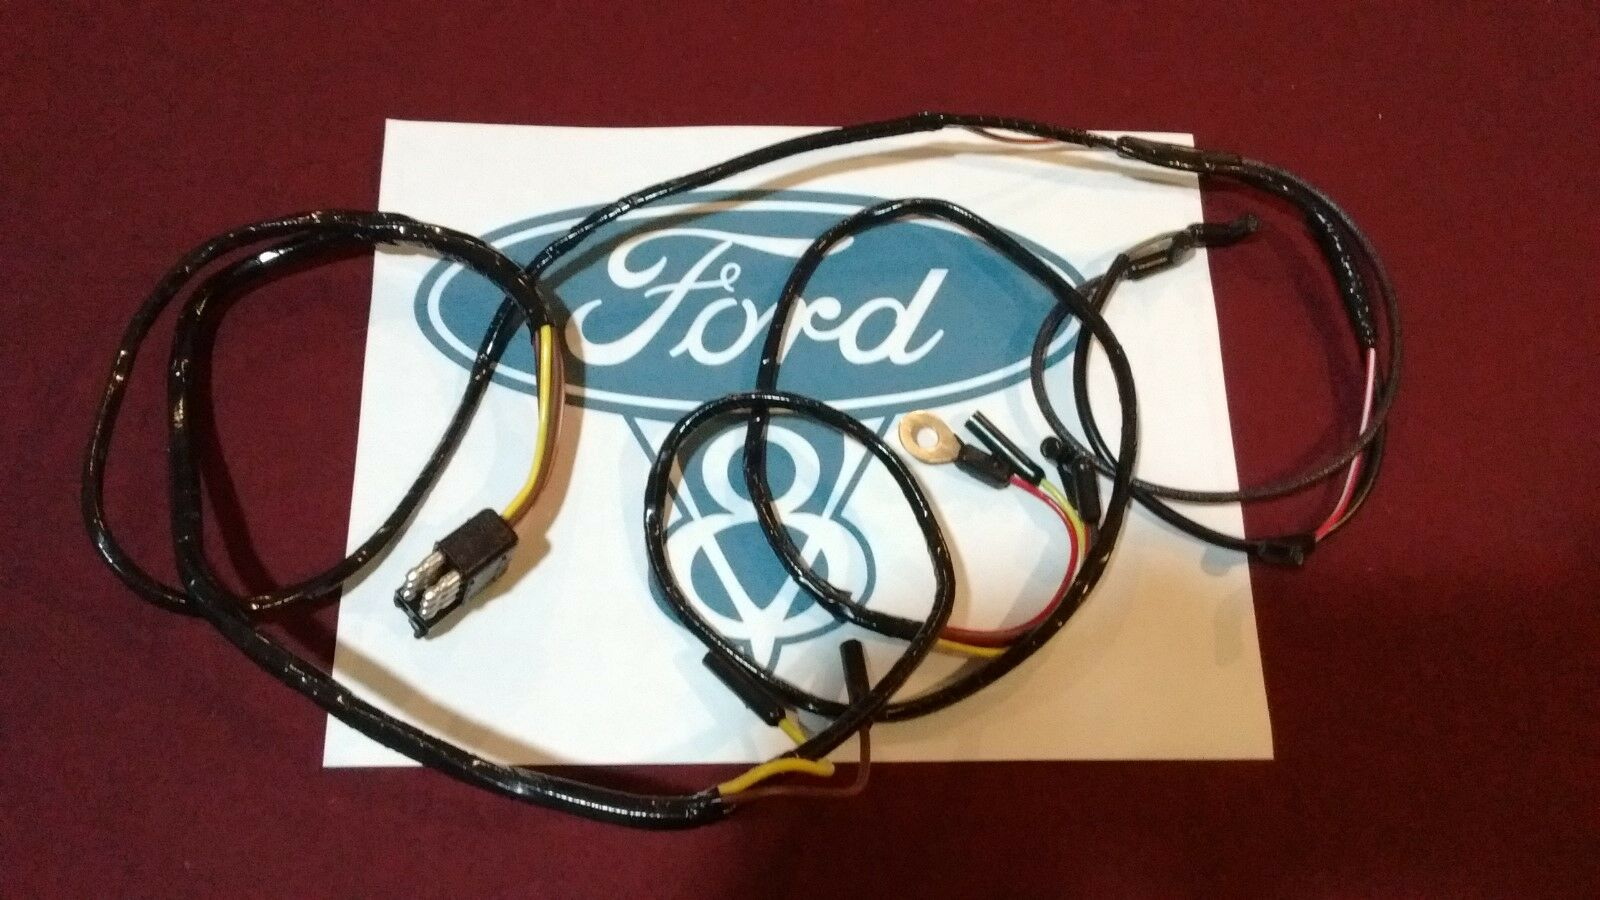 66 Ford Mustang v8 Engine Gauge Feed Wiring Harness 1966 289 1 of 3Only 5  available ...